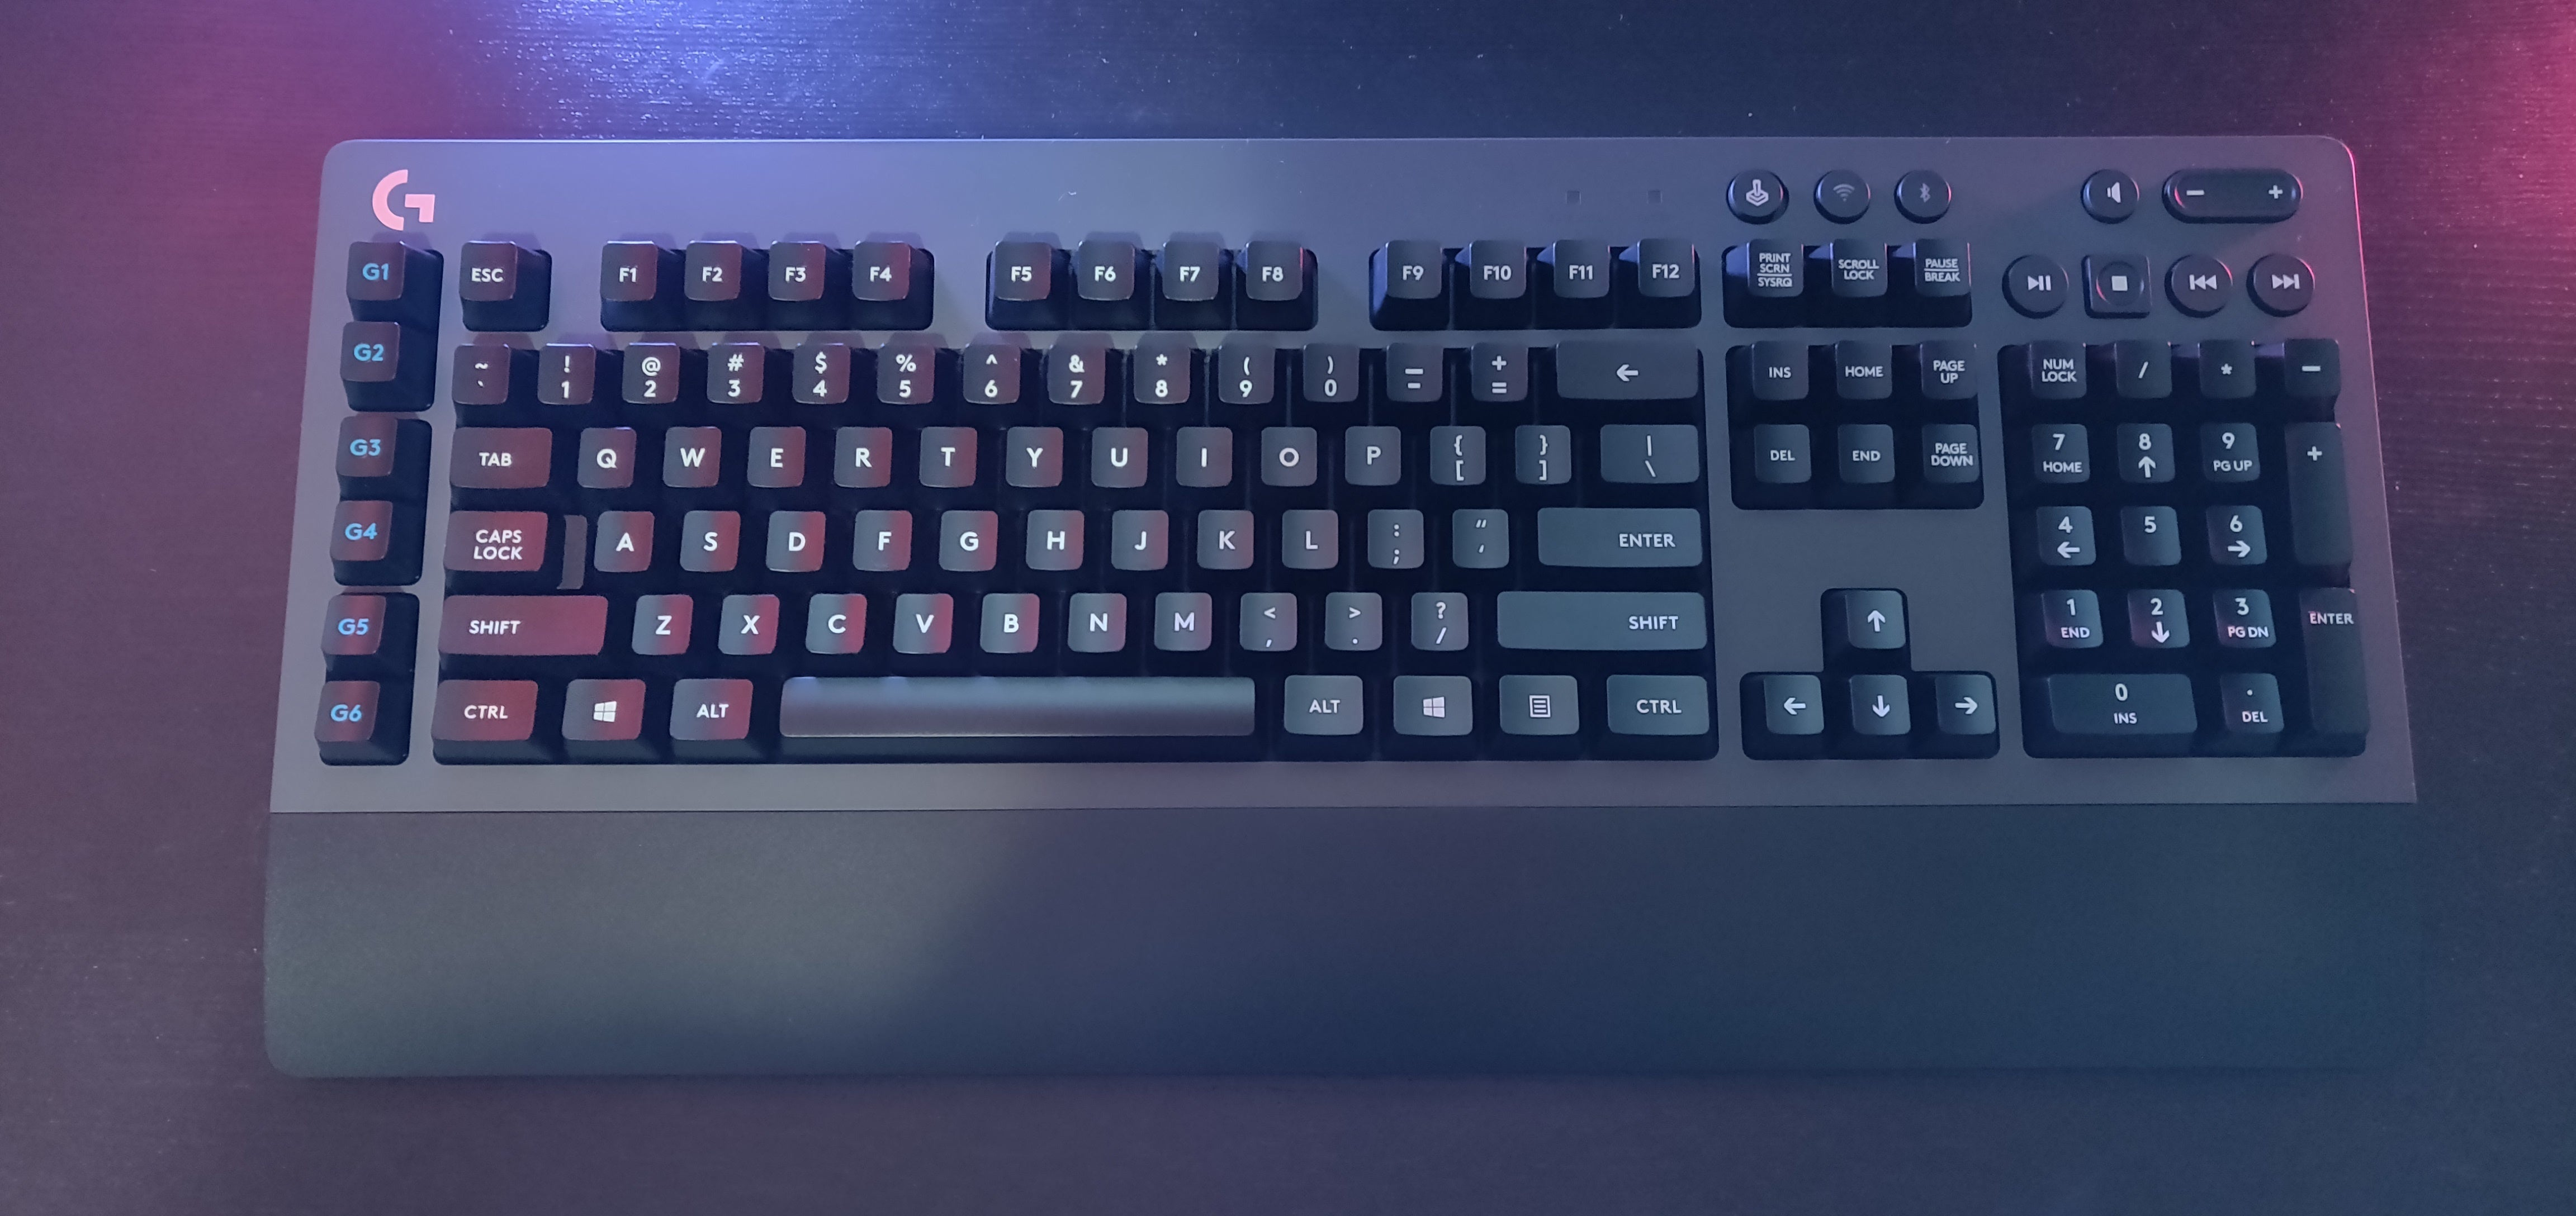 Logitech G613 Wireless Keyboard Review A Rare Mechanical